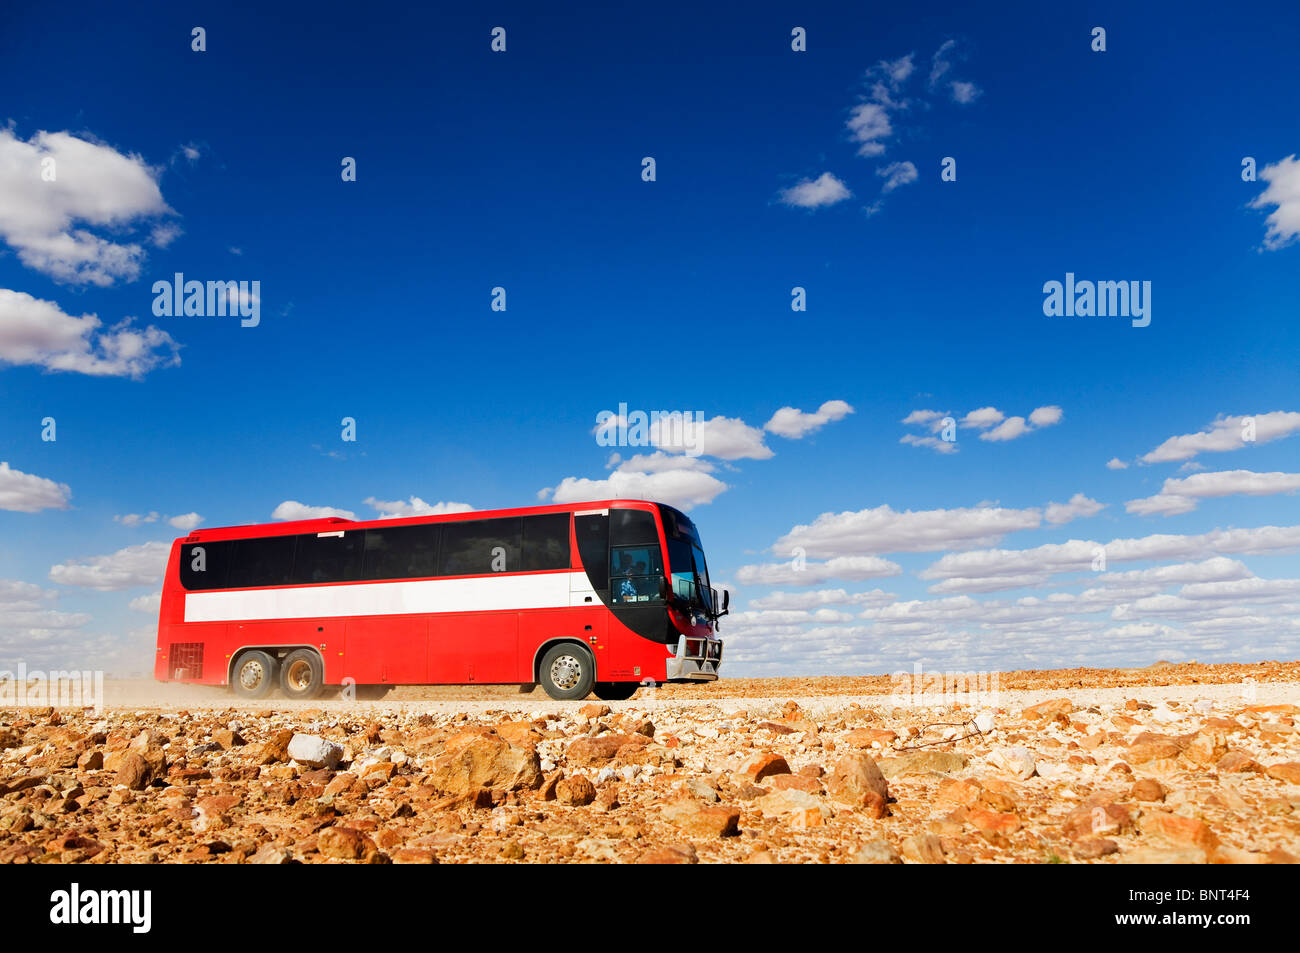 A bus drives along a dirt road in outback Queensland, near Birdsville, Queensland, AUSTRALIA. - Stock Image